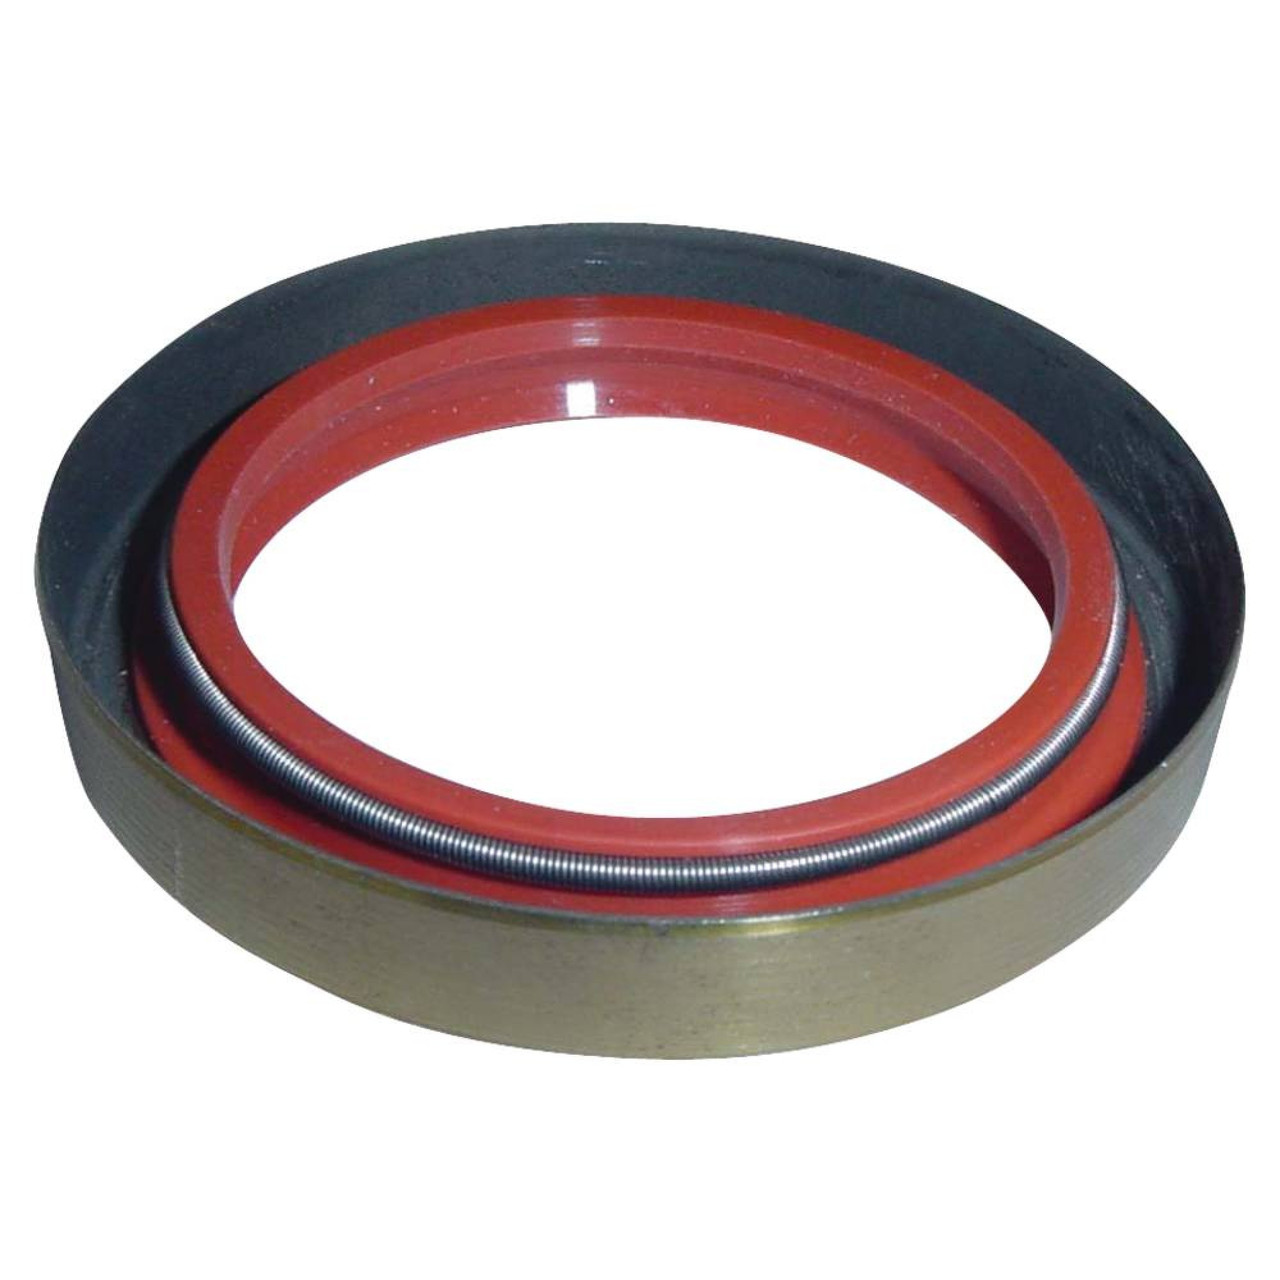 NEW Front Crank Seal for Ford New Holland Tractor - 87800696 C5NN6700A